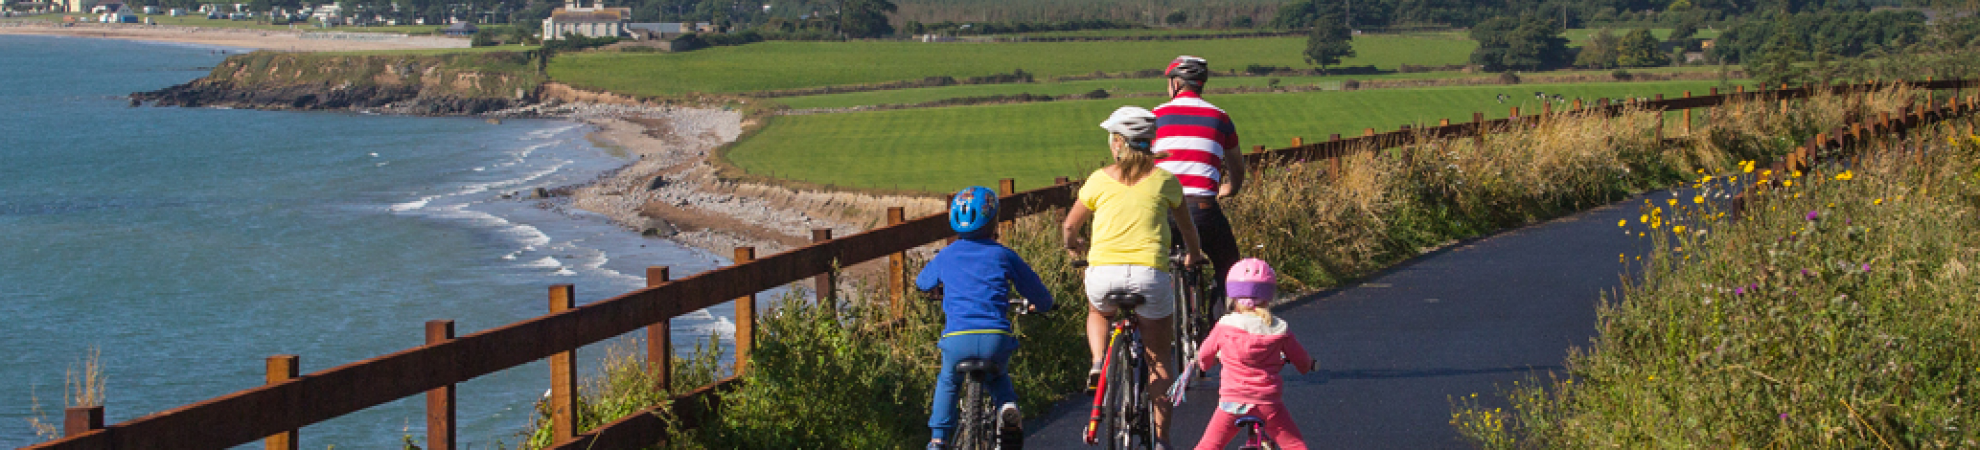 family friendly activities in ireland Waterford_Greenway